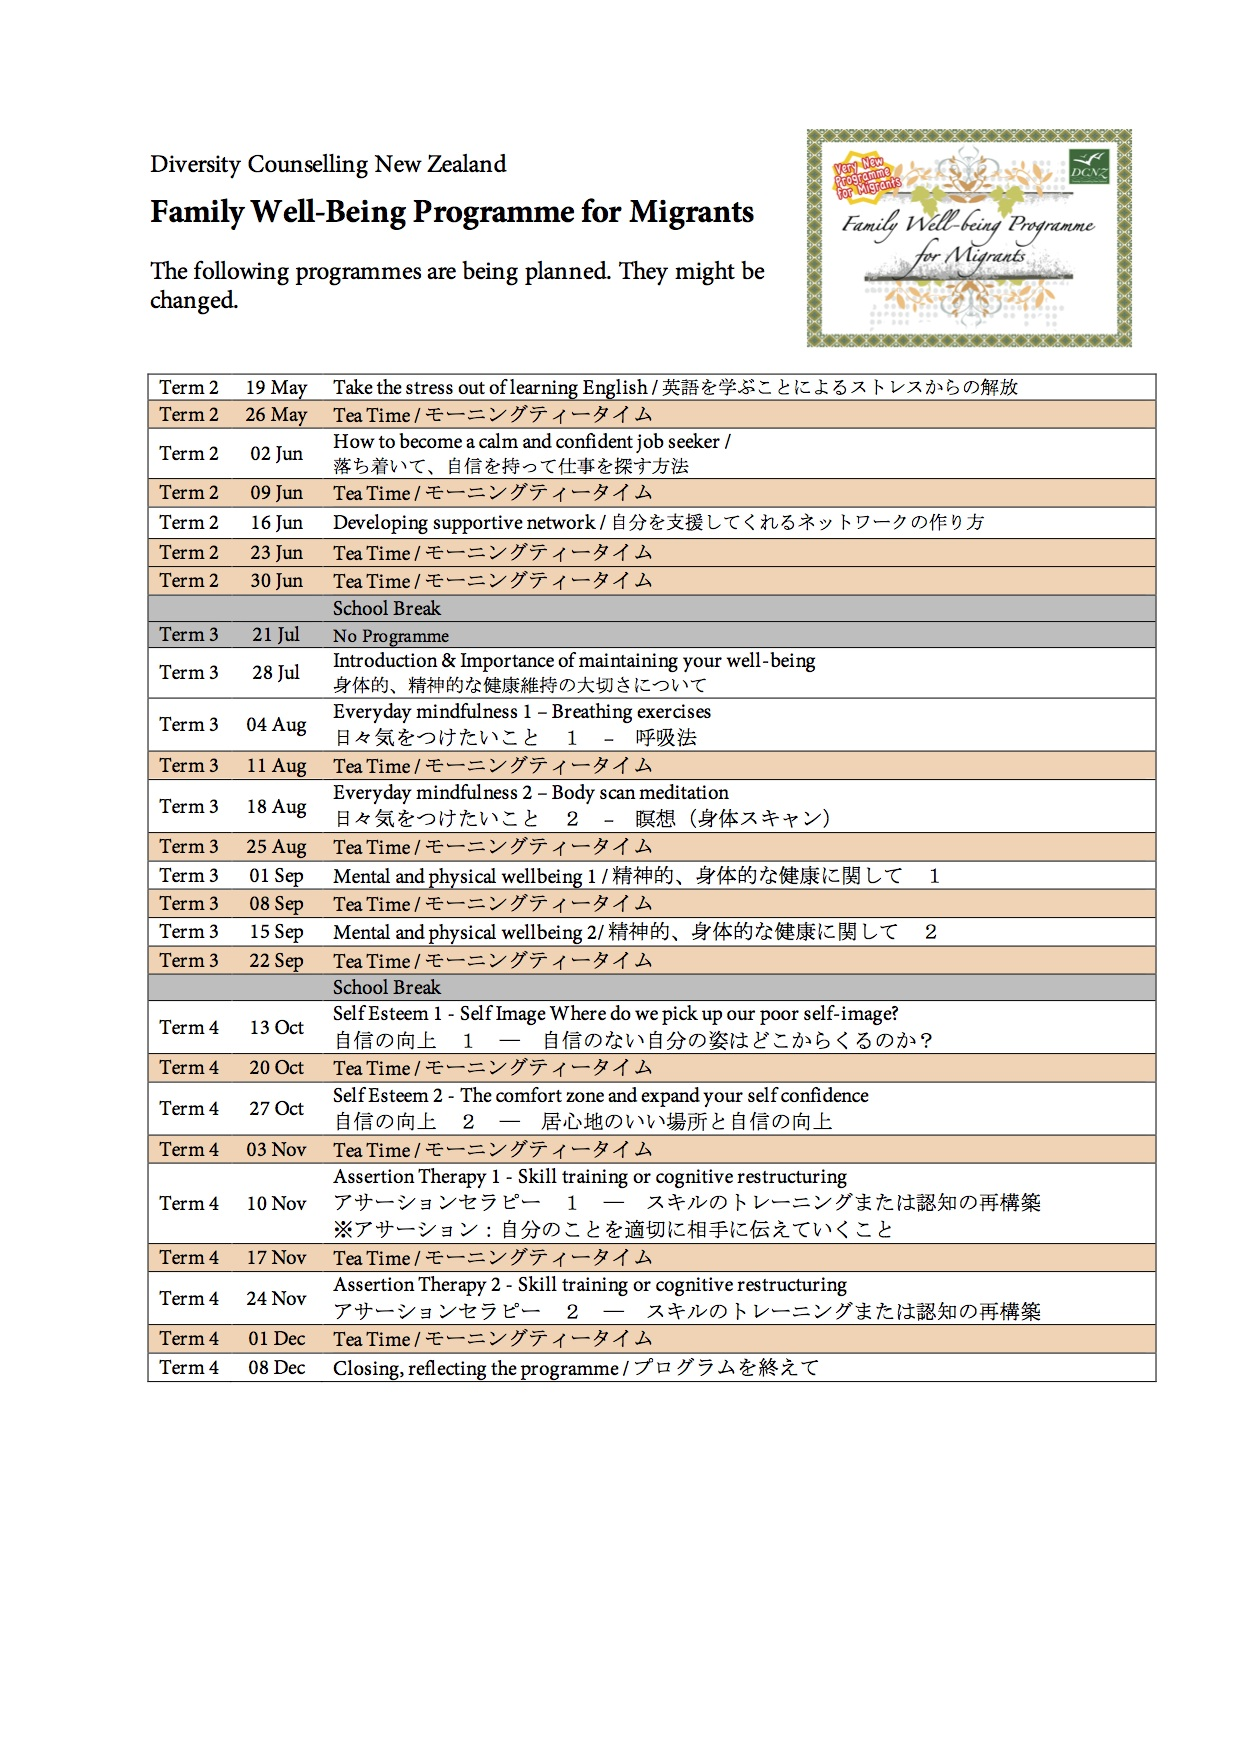 DCNZ Family Wellbeing Programme for Migrants 2015 in Japanese